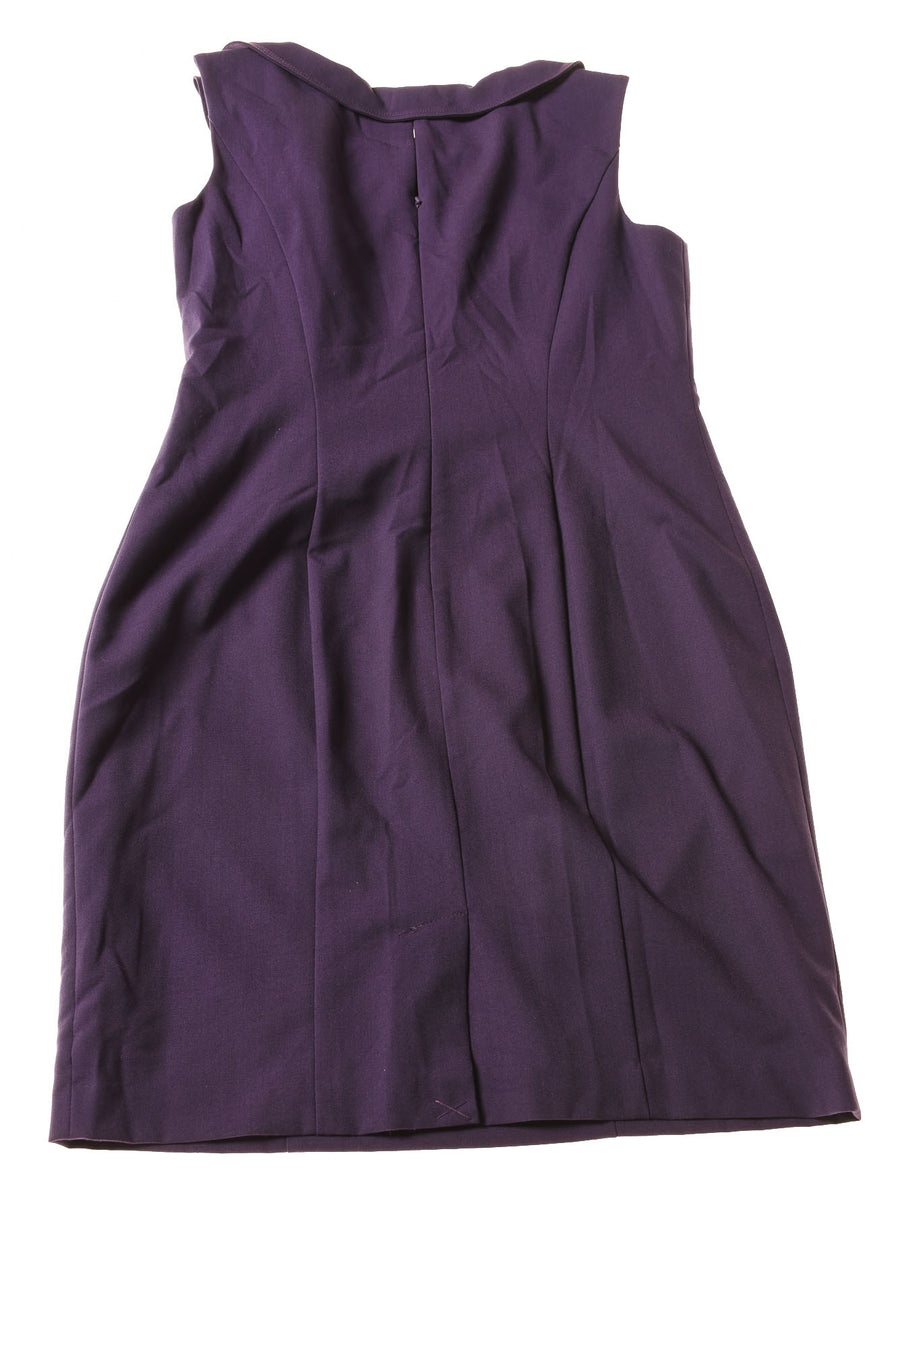 Women's Dress By Calvin Klein